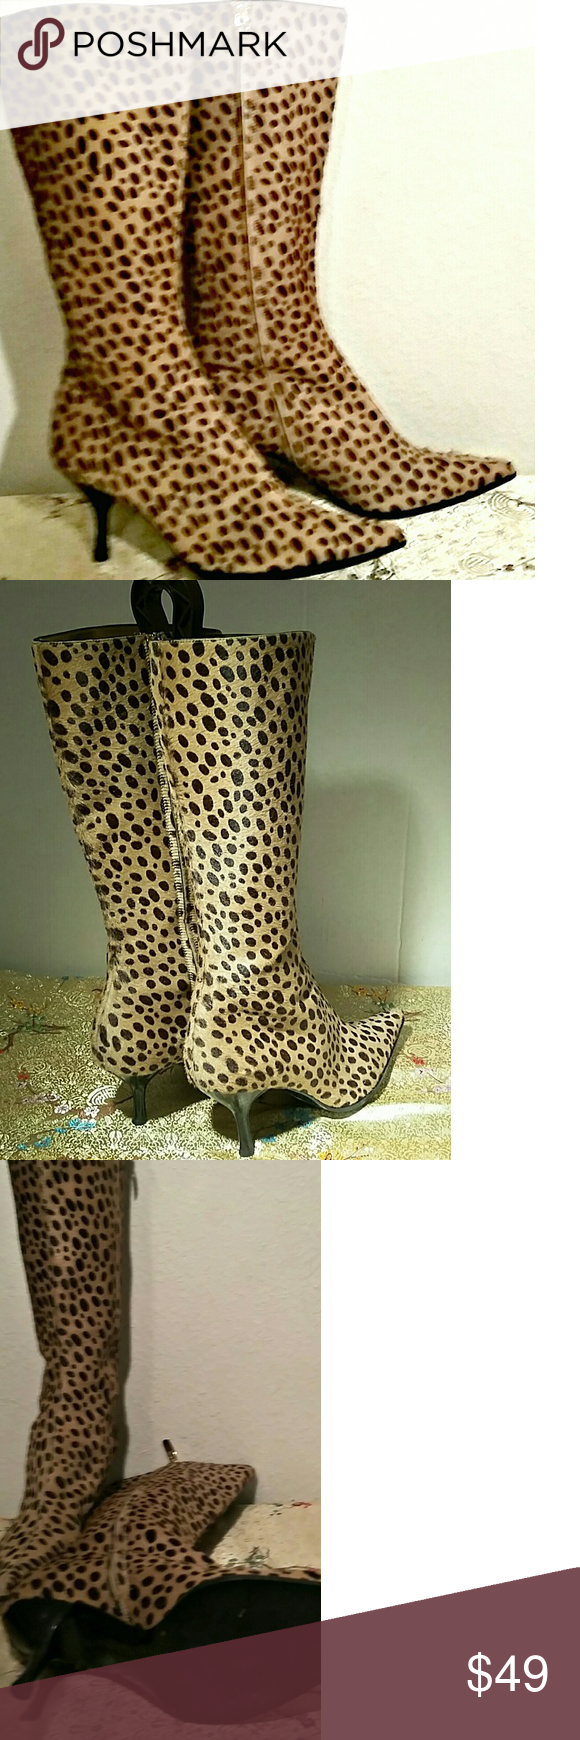 e6b3bf48296733 NEW -Vero Cuoio Leopard calf hair boots Gorgeous mid height stiletto boots  in perfect condition